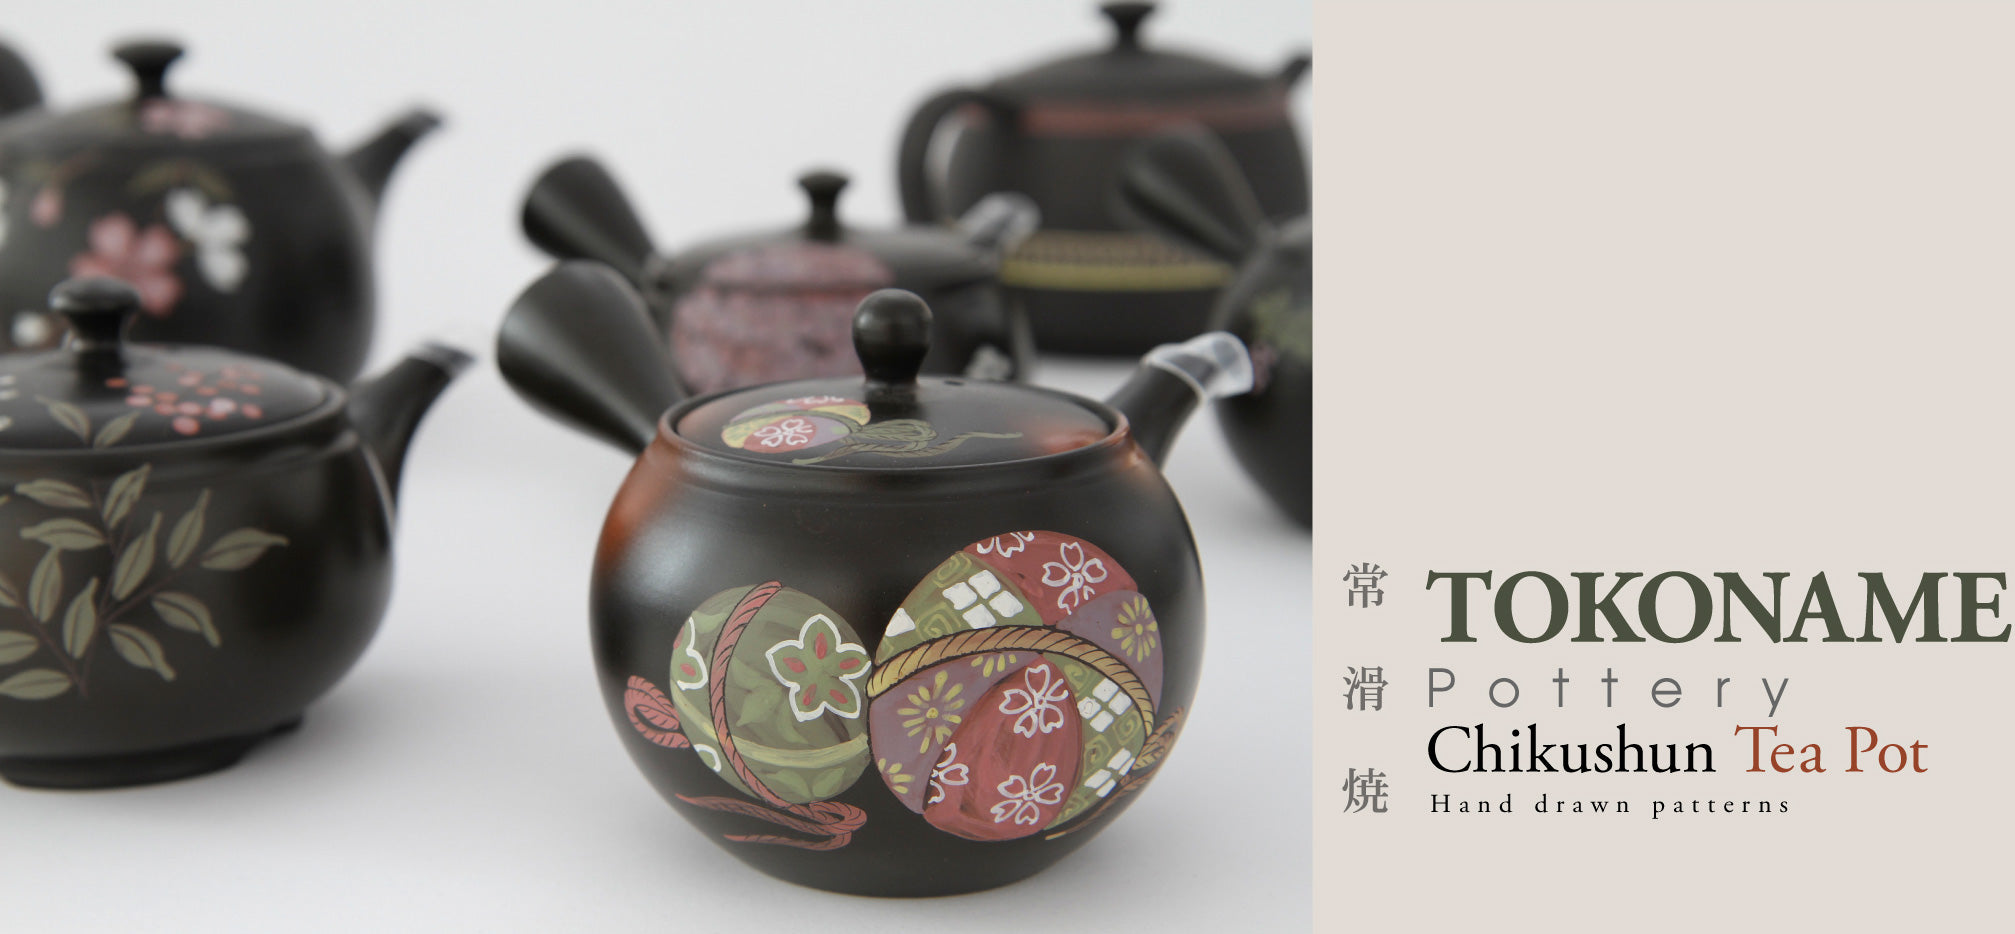 TOKONAME Pottery Chikushun Tea Pot 常滑焼 ティーポット